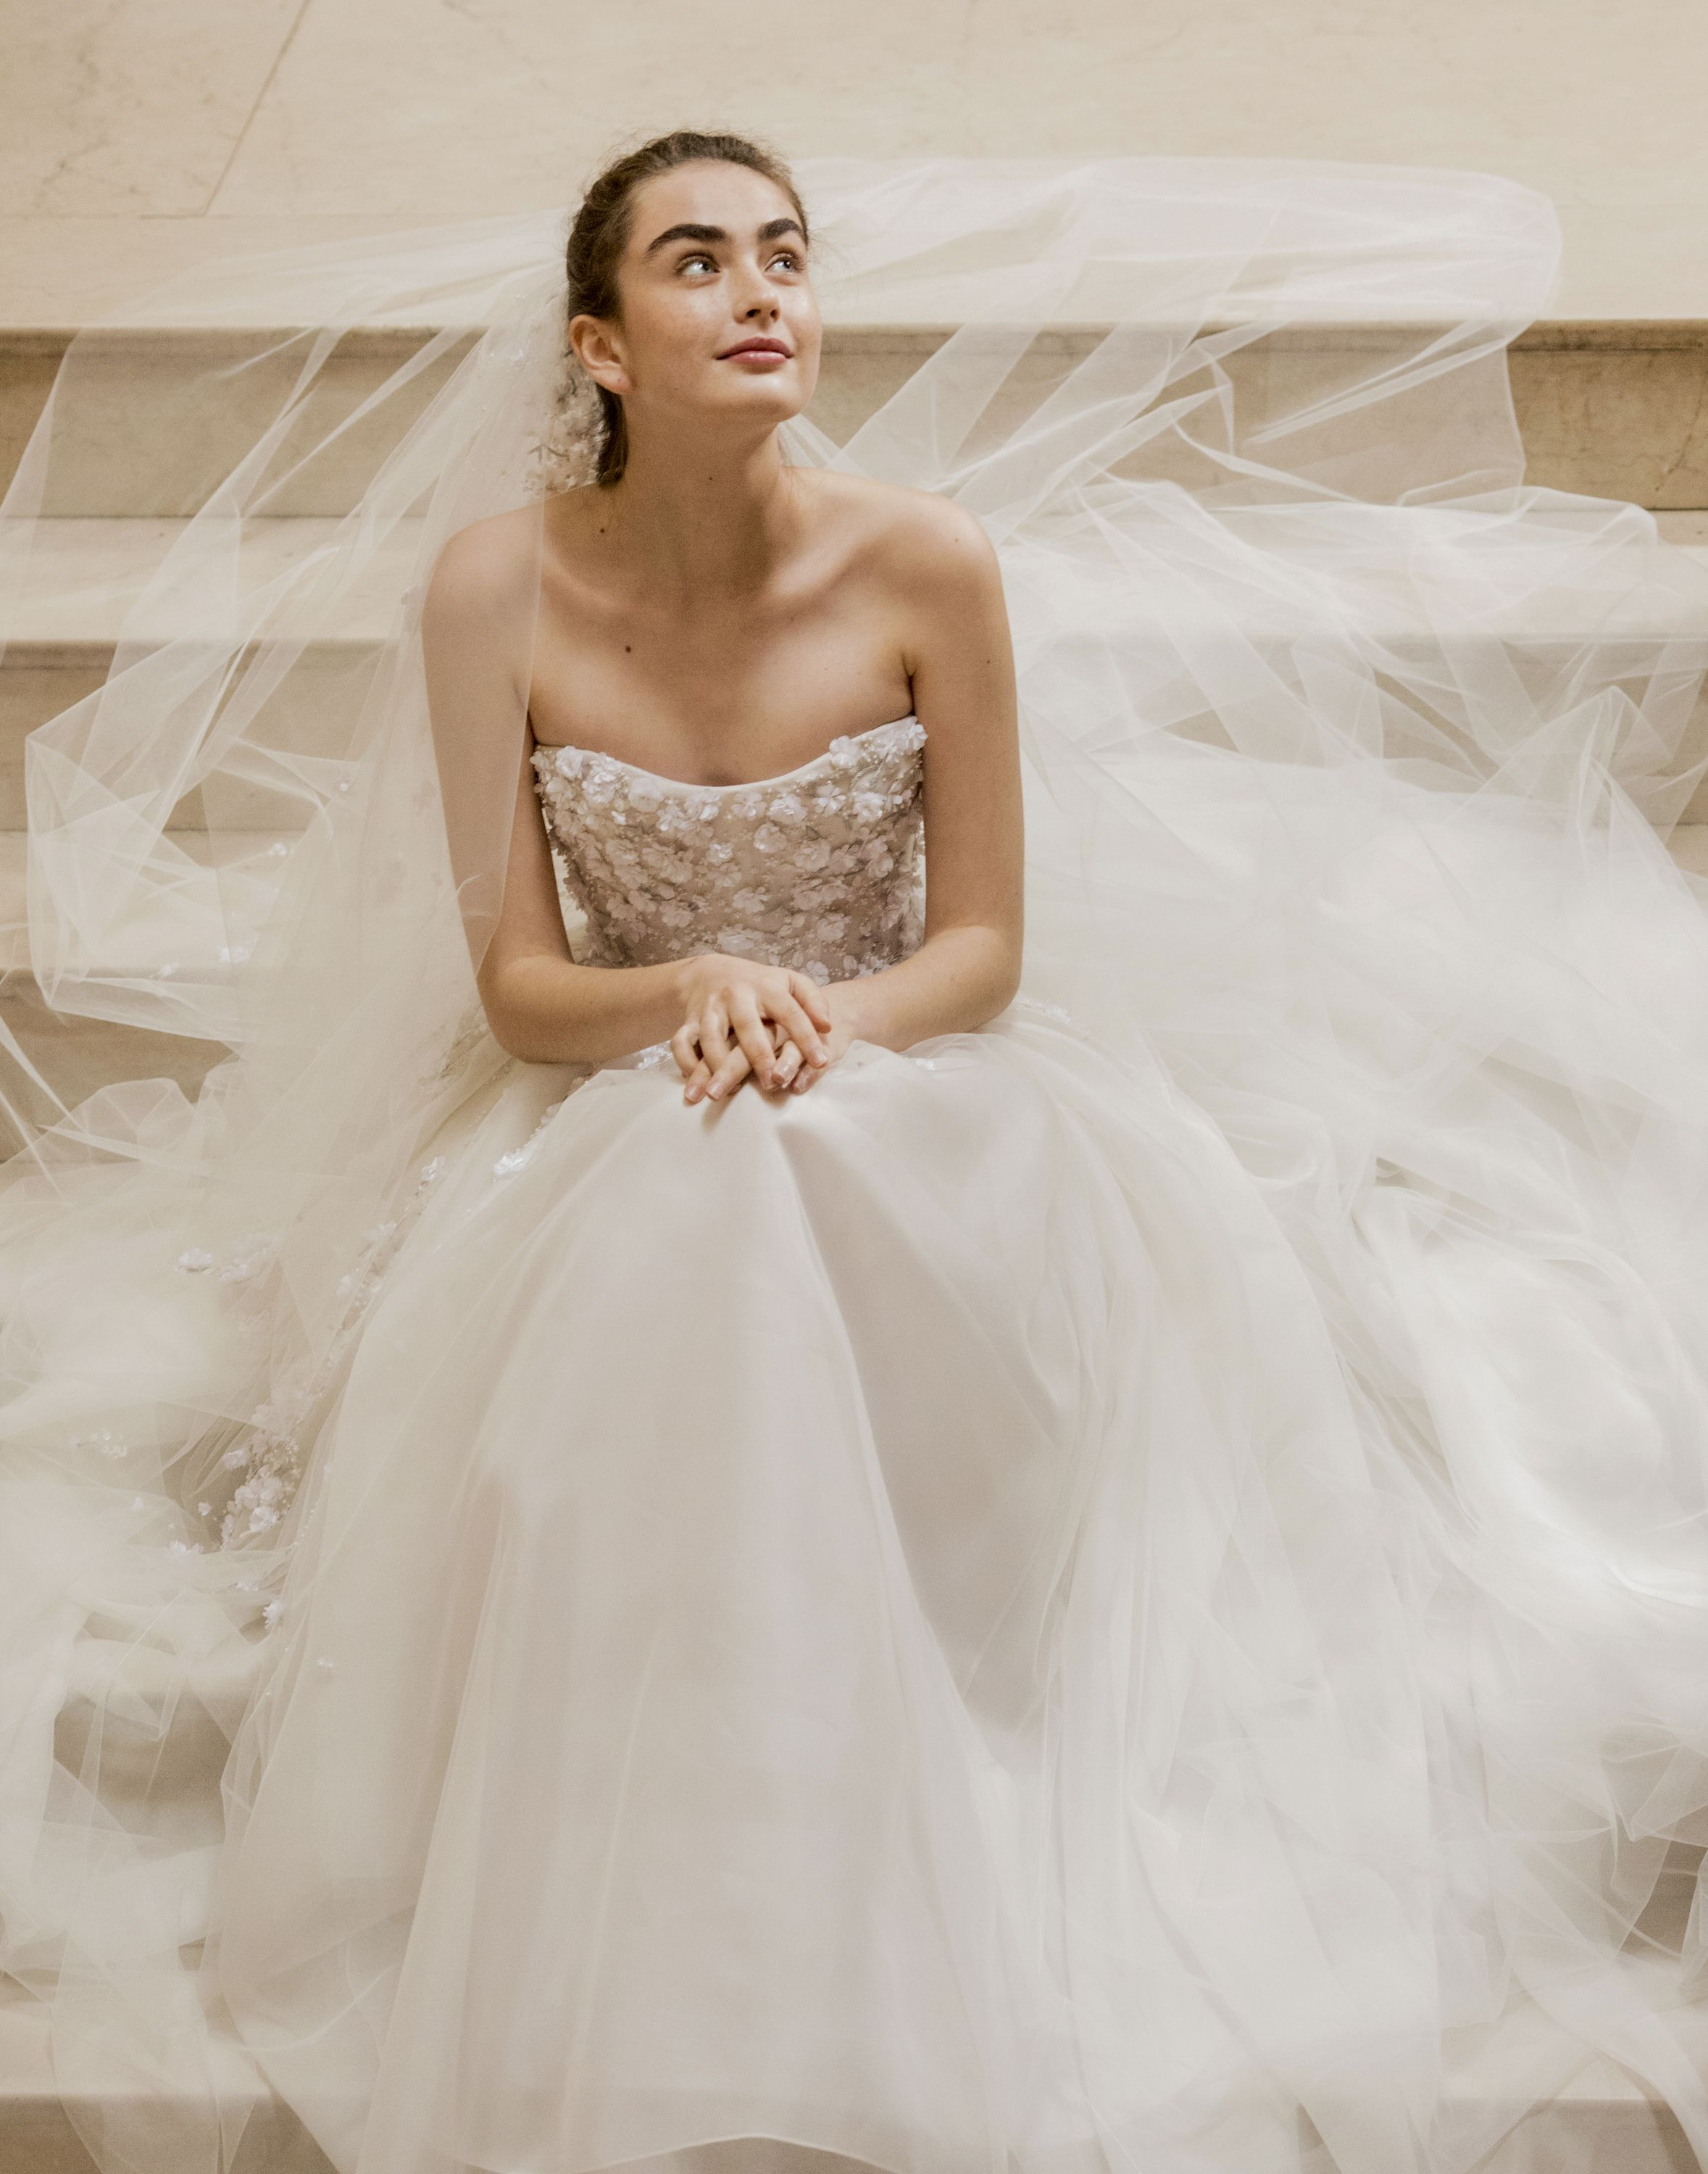 Strapless embellished Hadley gown with tulle skirt from